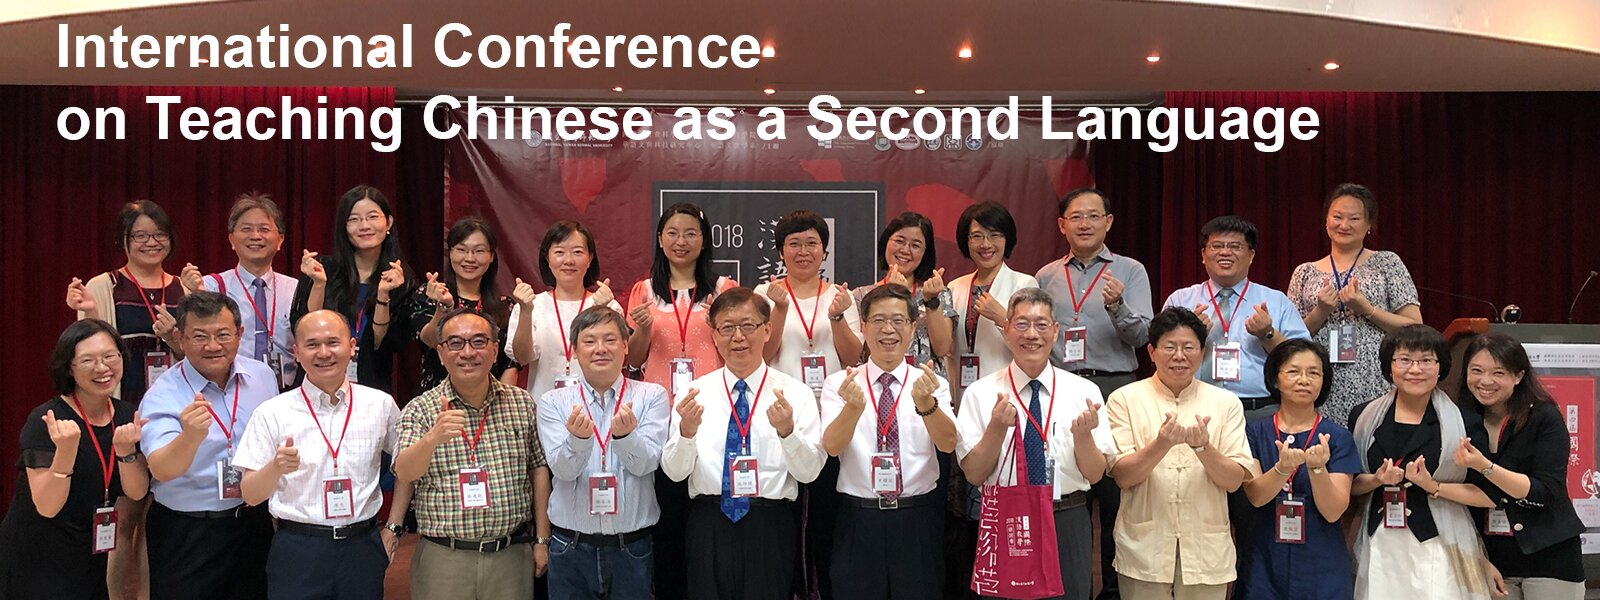 International Conference on Teaching Chinese as a Second Language